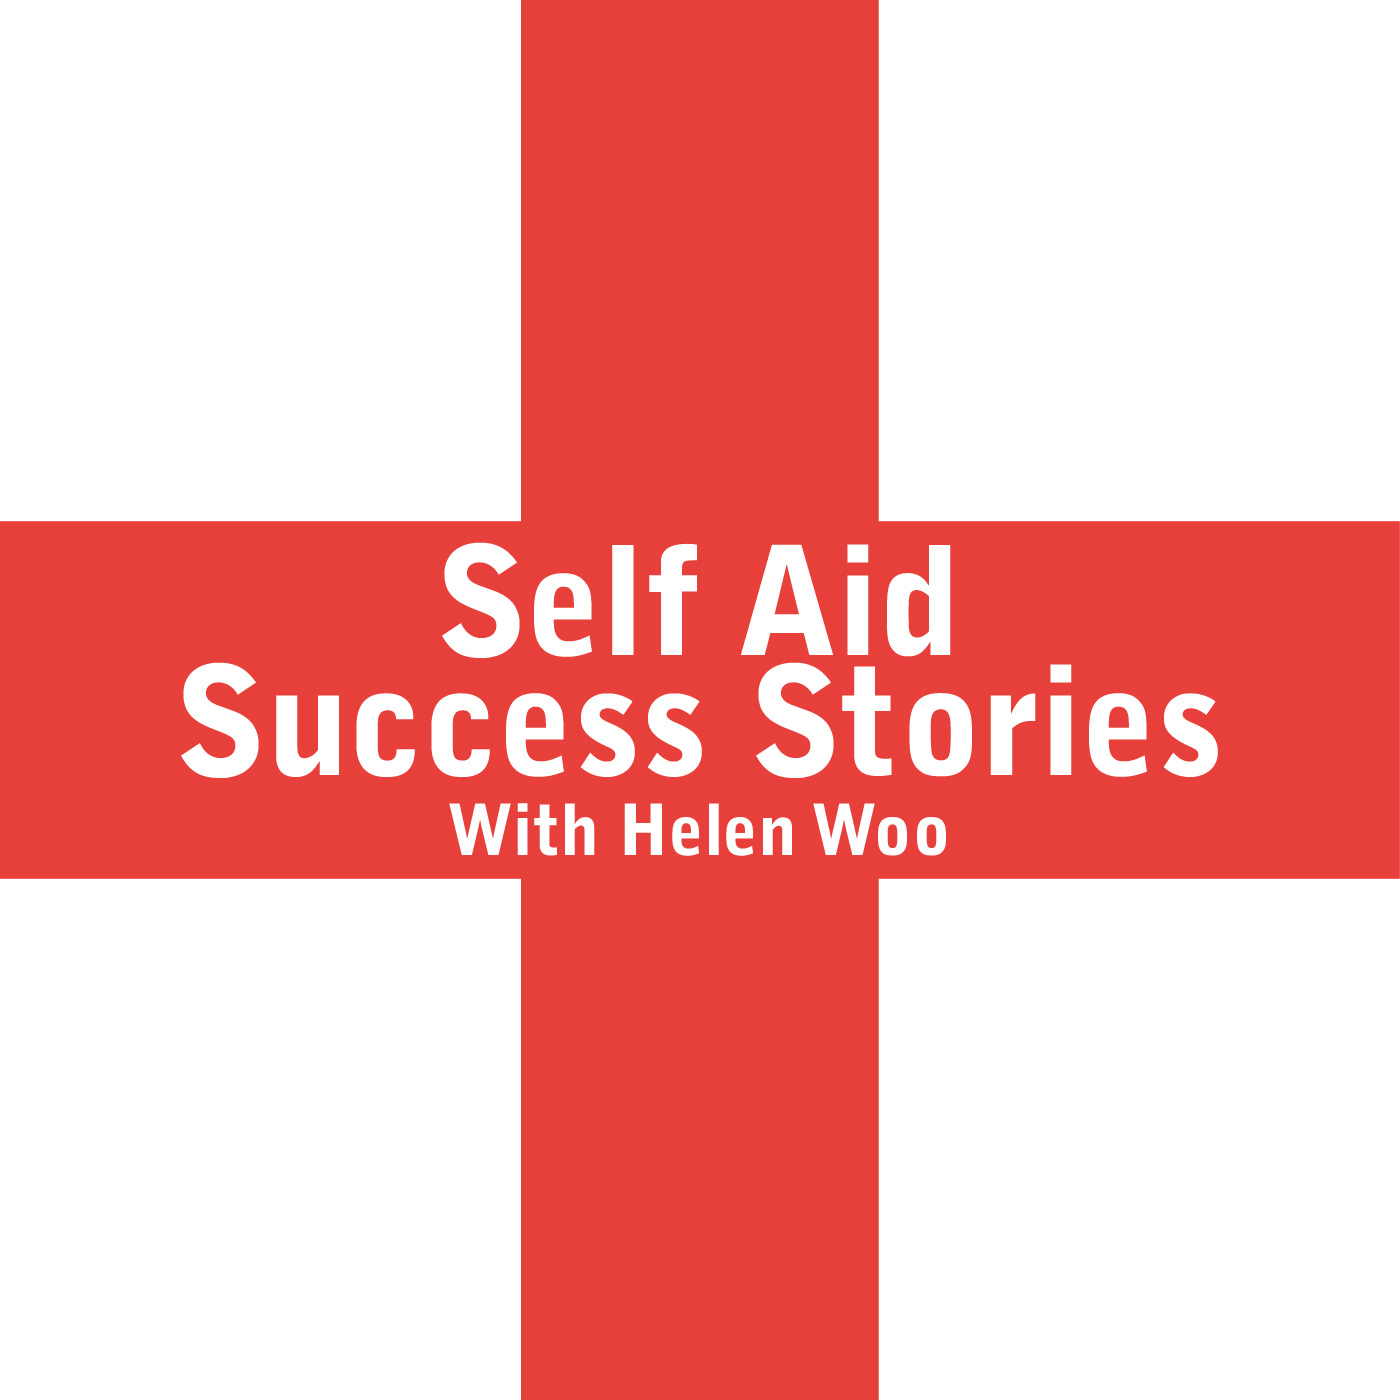 Self Aid Success Stories